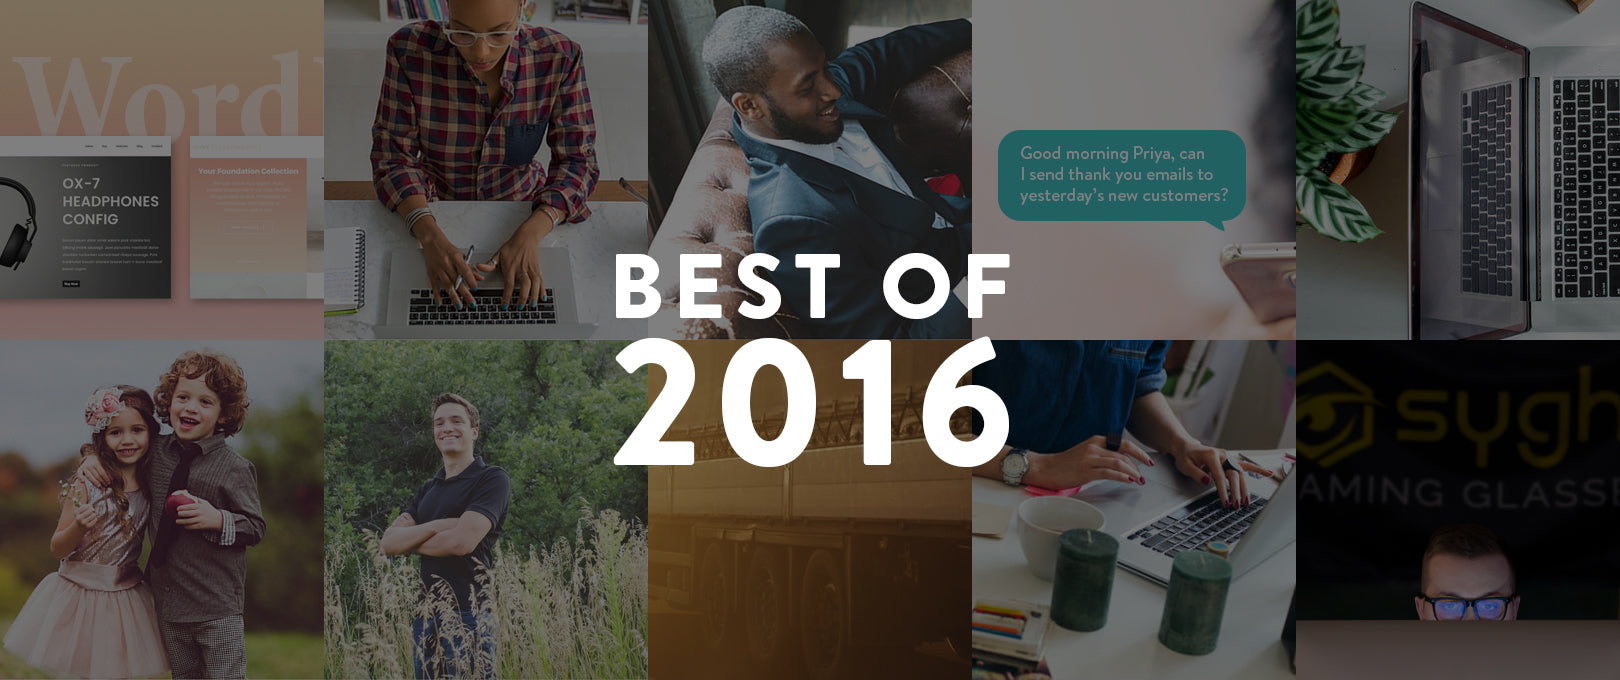 The Top 10 Articles on the Shopify Ecommerce Blog in 2016